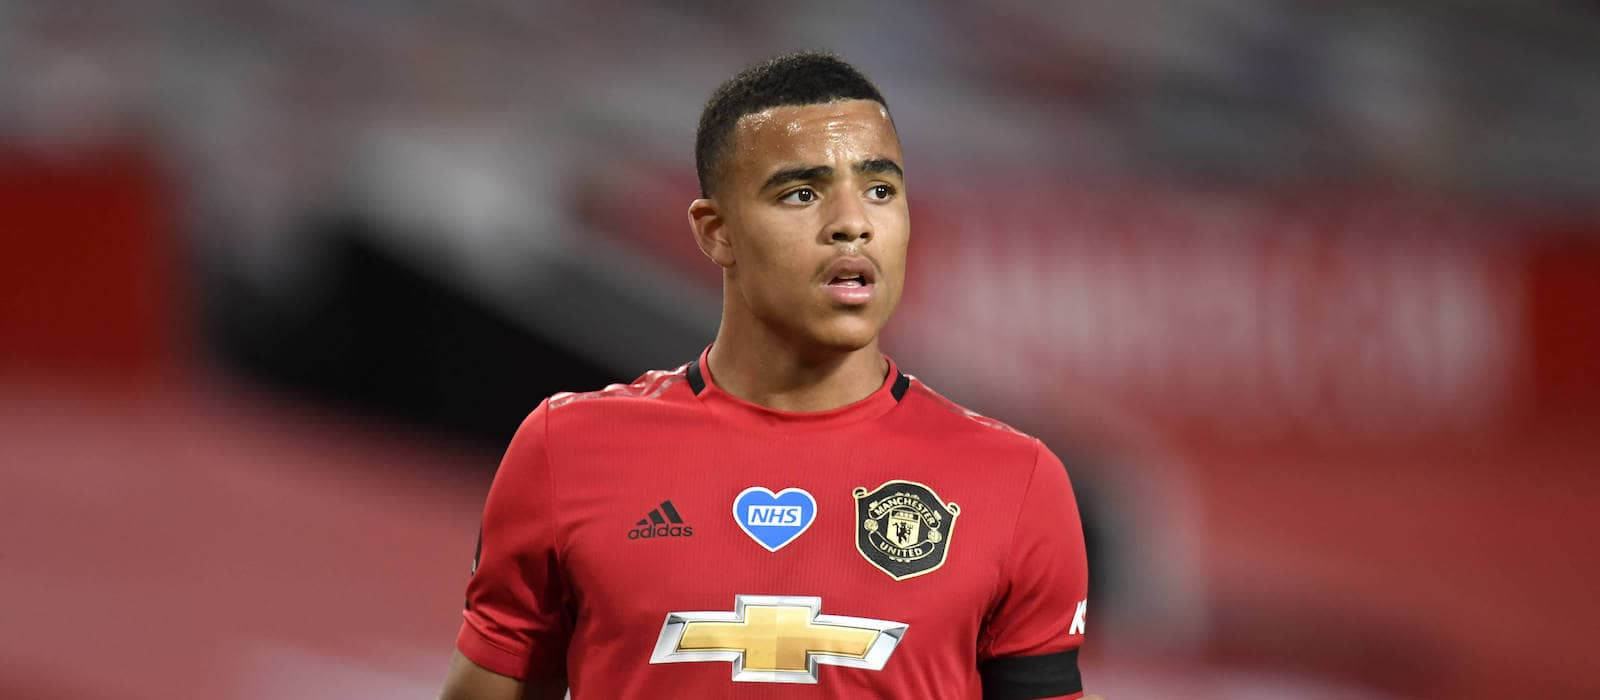 Man United fans wouldn't swap Mason Greenwood for any player in the world